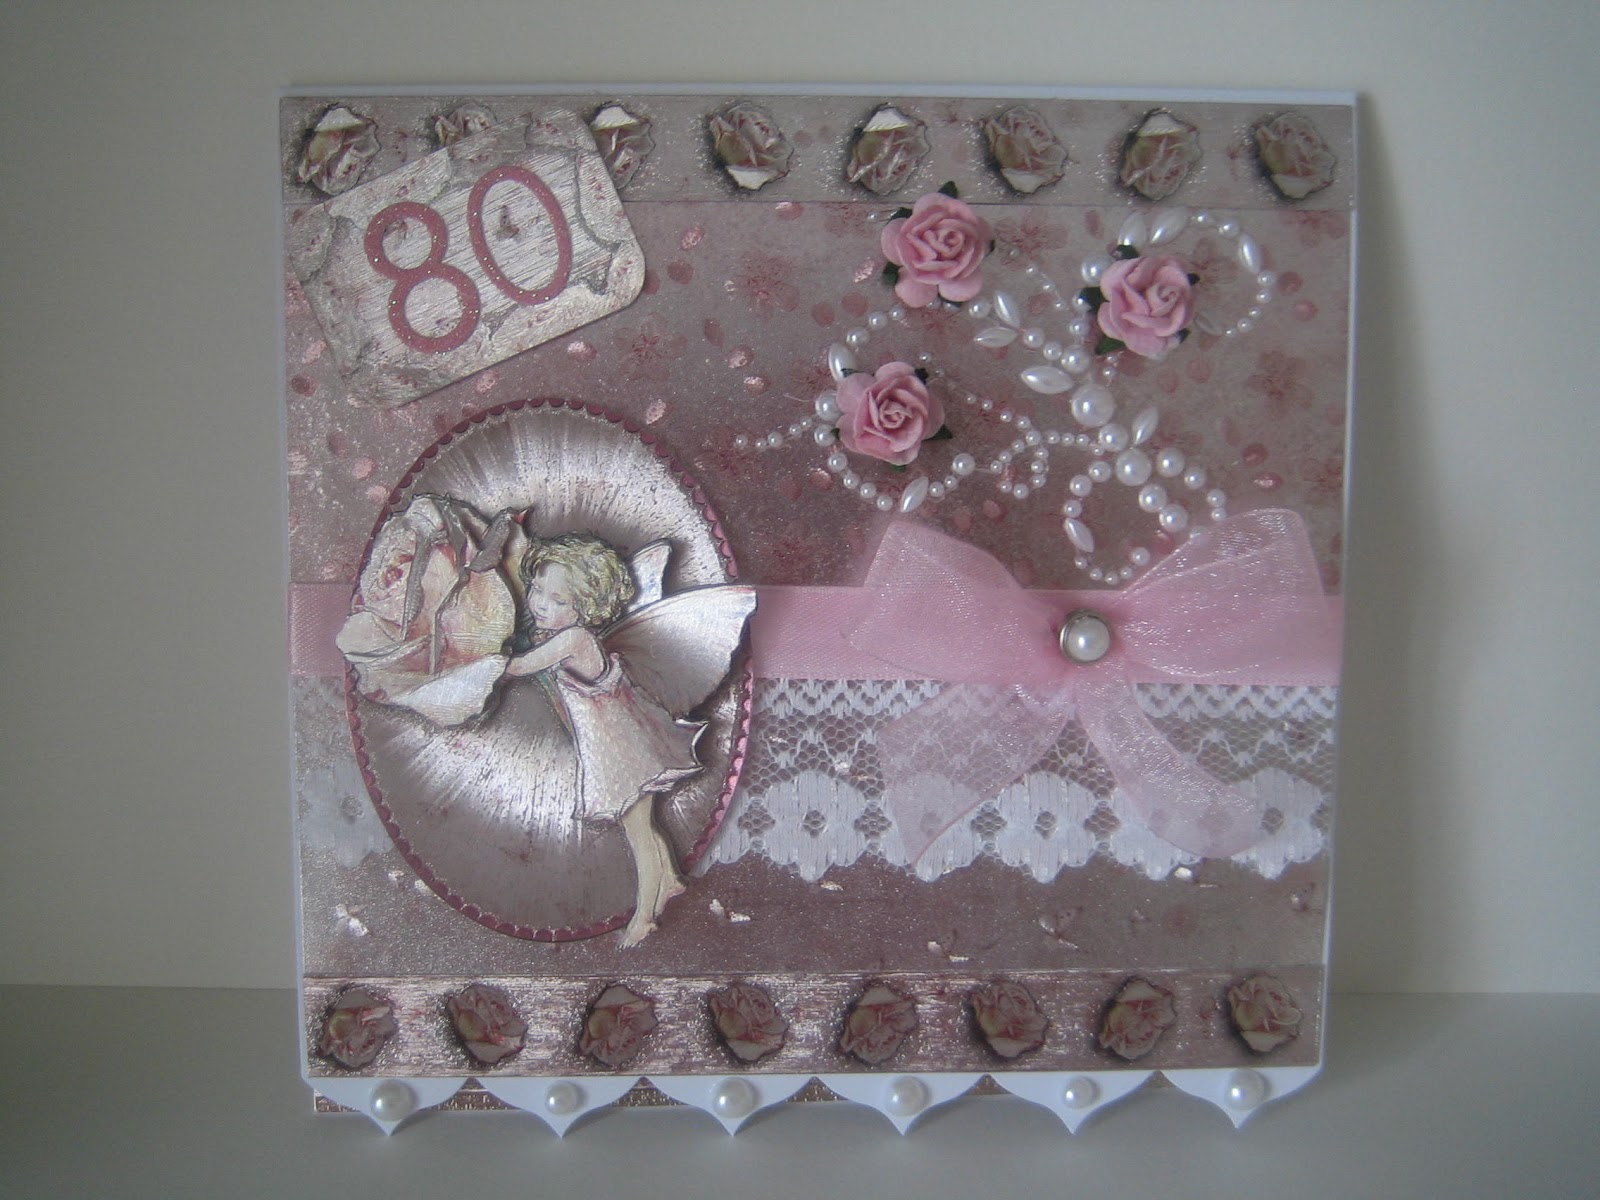 Pixies Crafty Workshop In the pink at 80 – 80th Birthday Cards for Mum